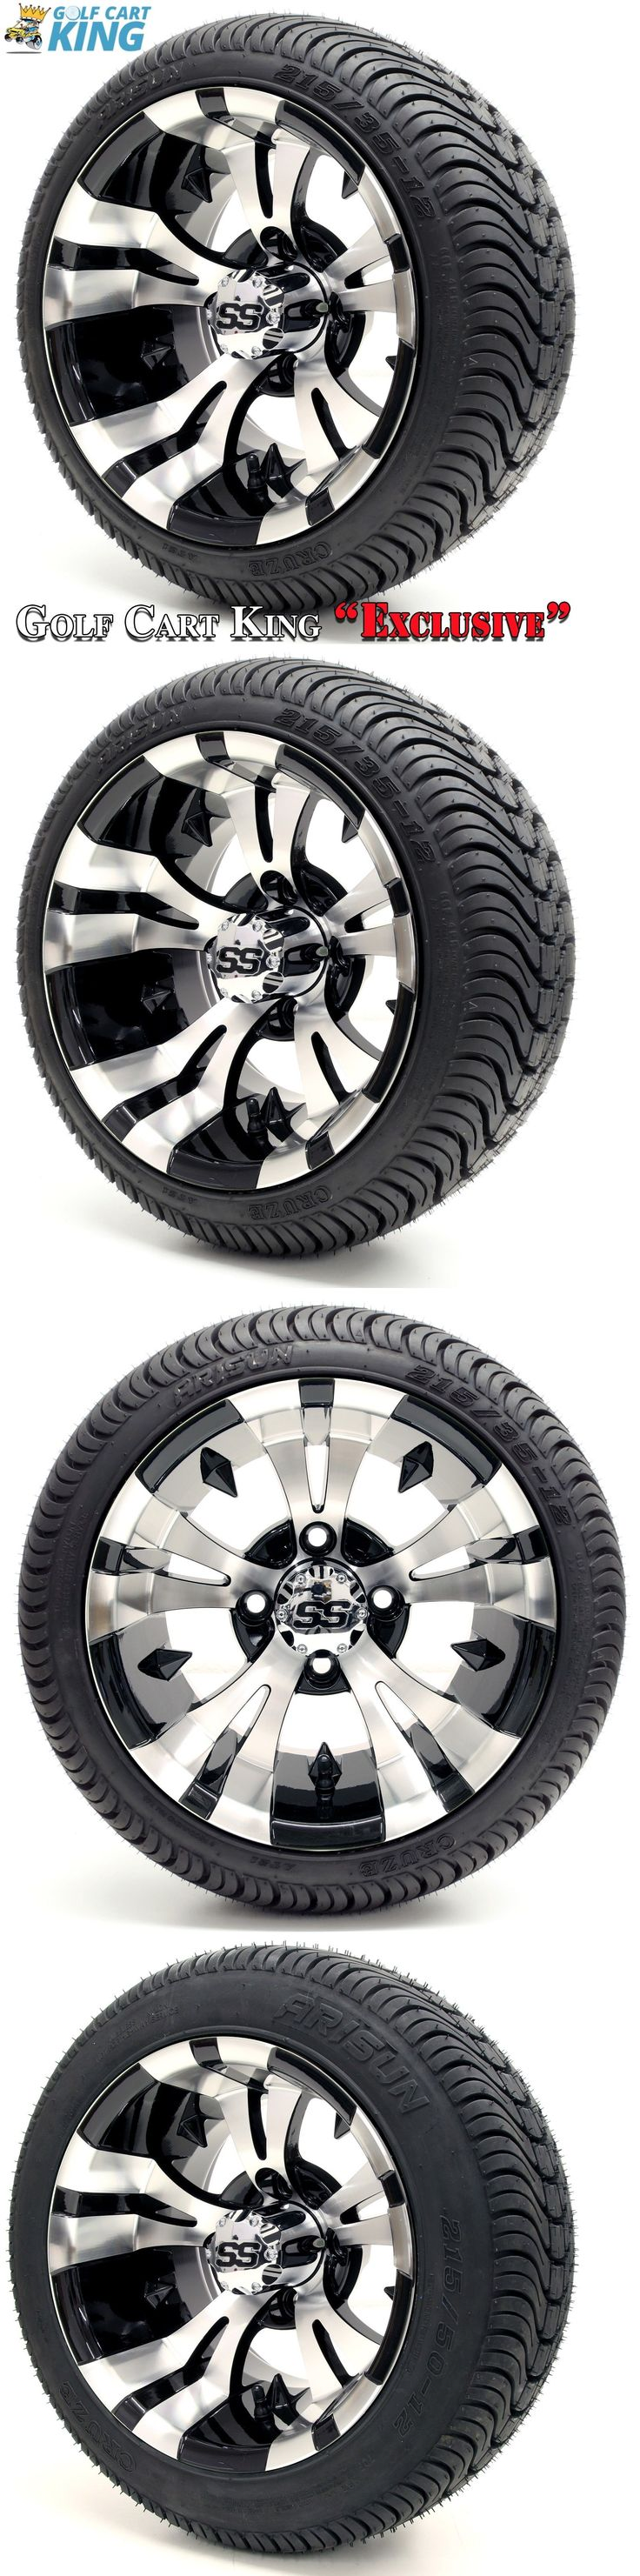 Push-Pull Golf Carts 75207: Golf Cart 12 Vampire Ss Wheel Rim And (215 35-12 Or 215 50-12) Dot Tire Combo -> BUY IT NOW ONLY: $419 on eBay!